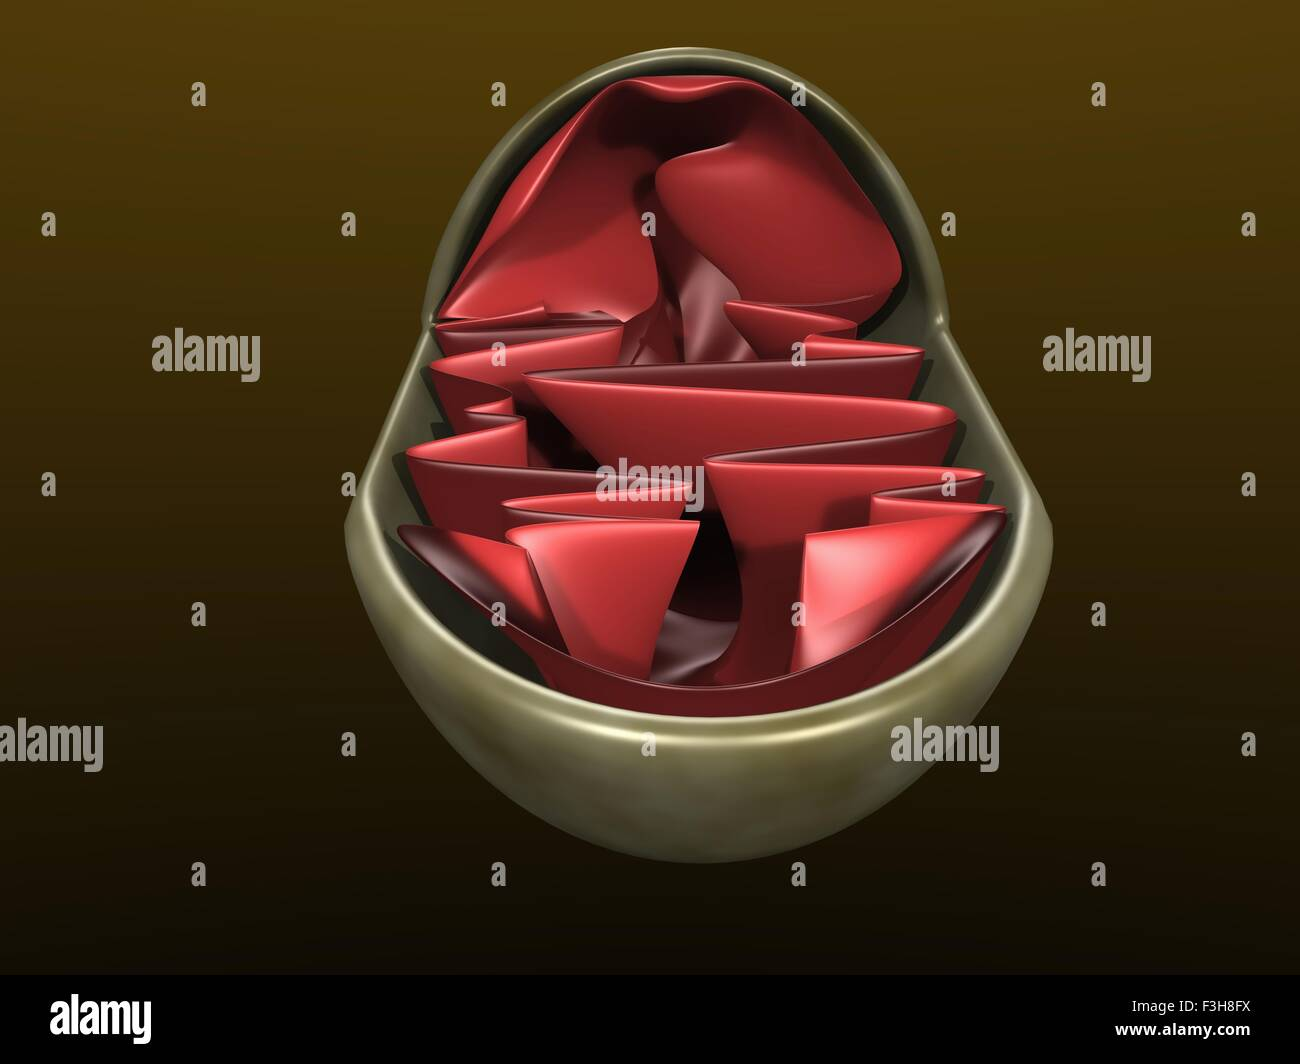 3d illustration of a mitochondrium - Stock Image